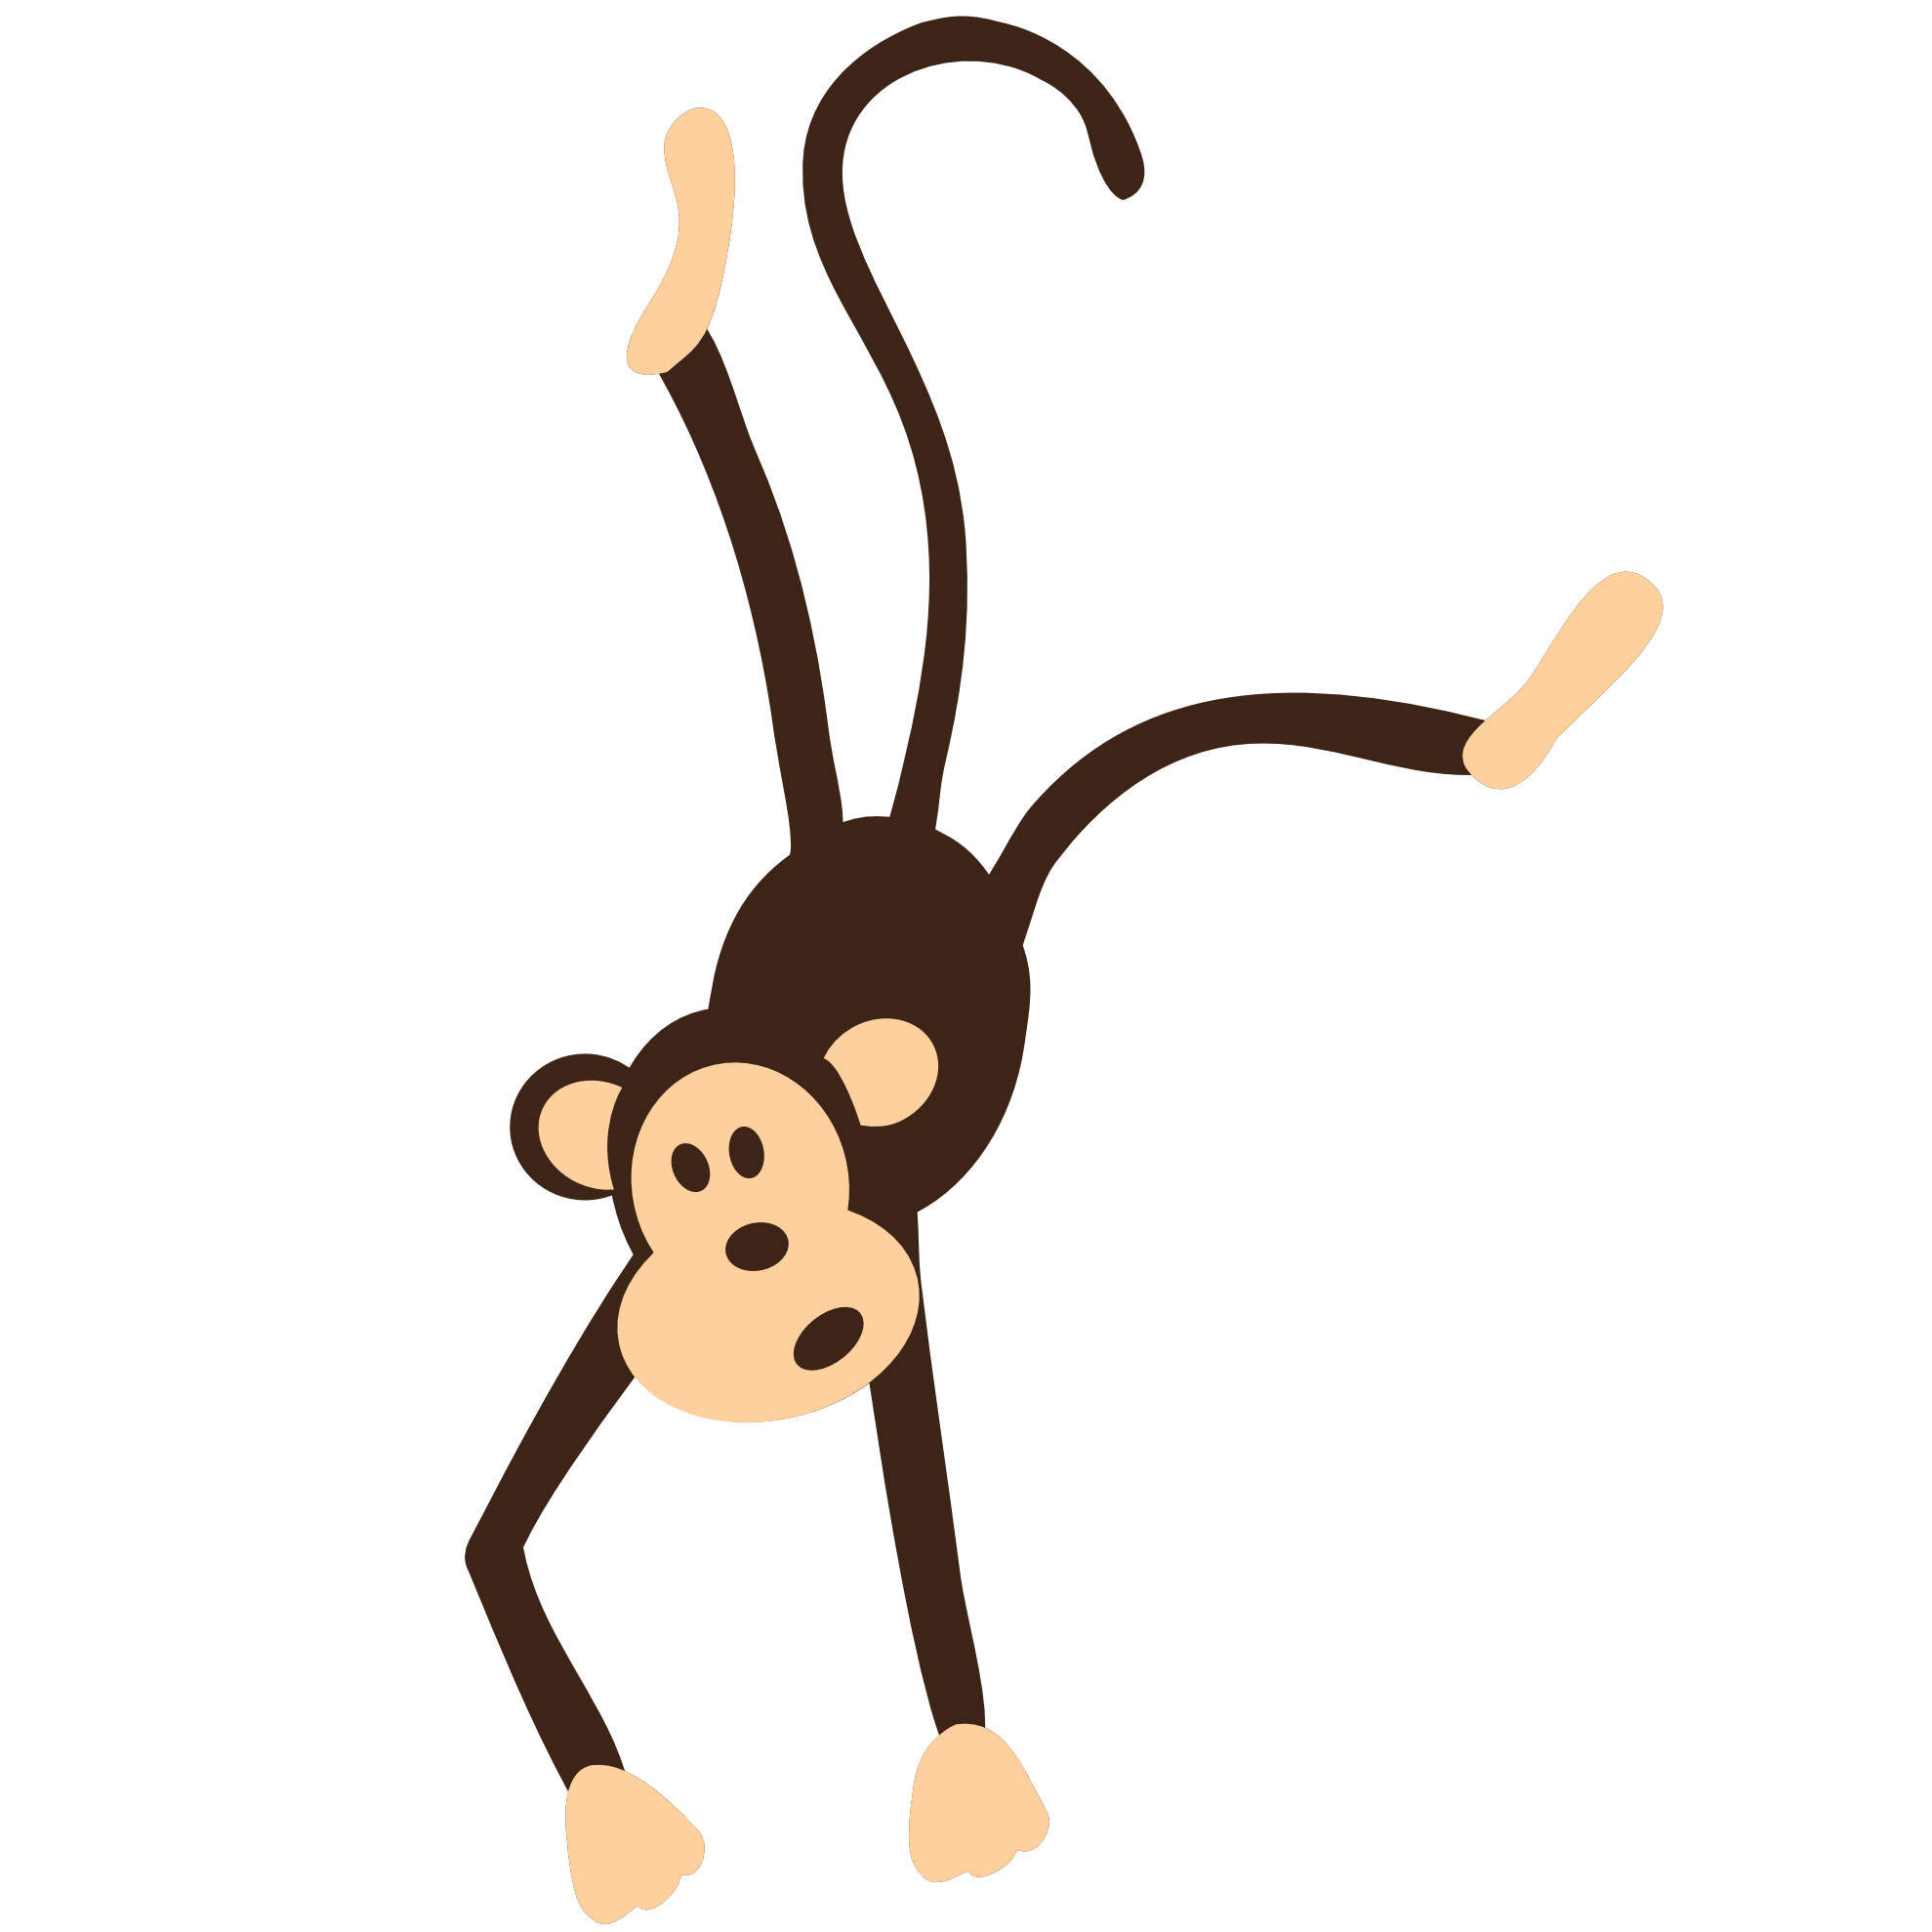 monkey png transparent images png only #19185